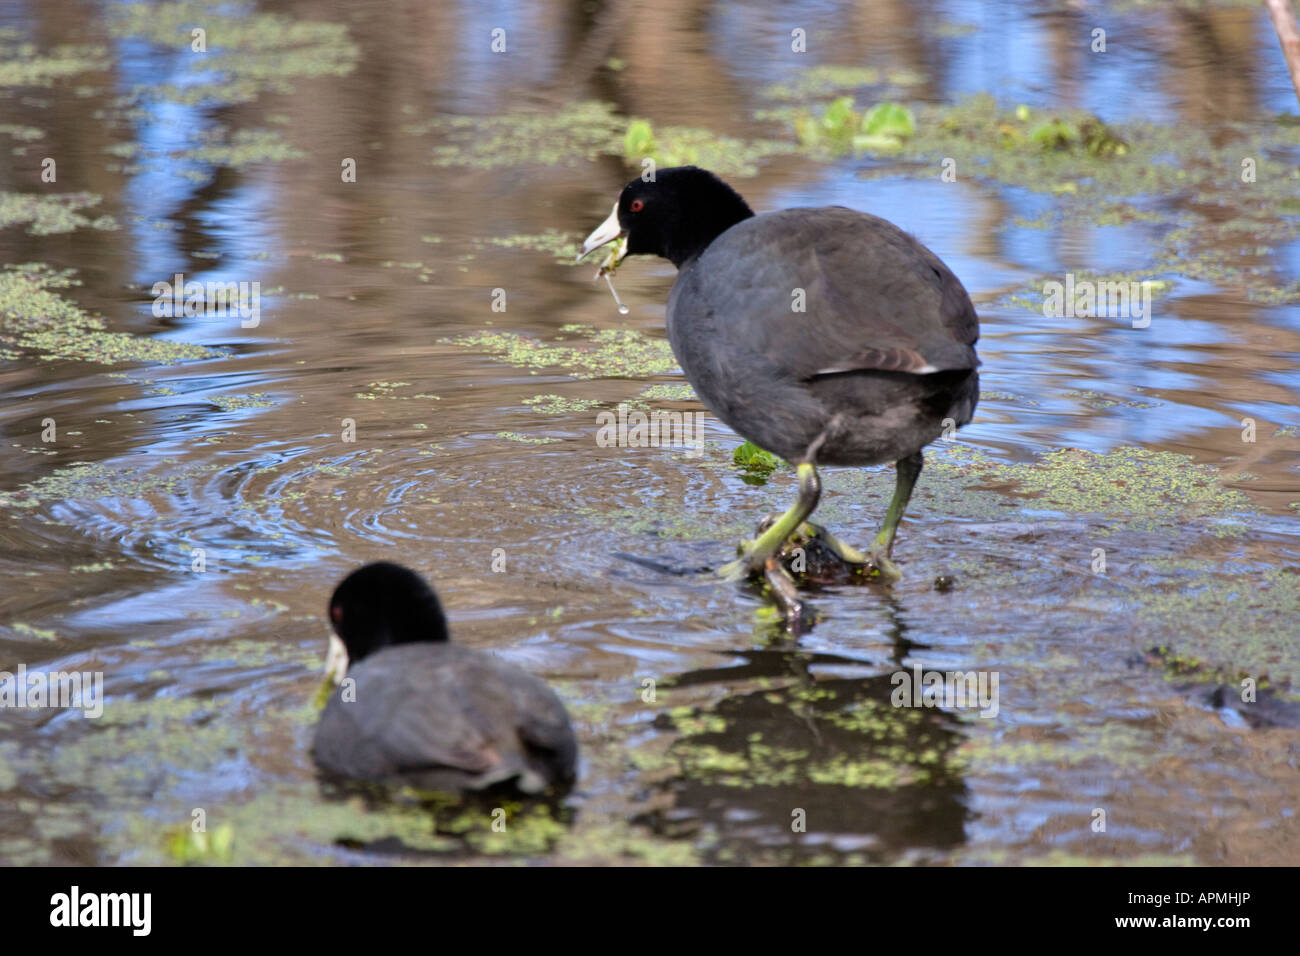 A pair of coots search for food in the marsh - Stock Image